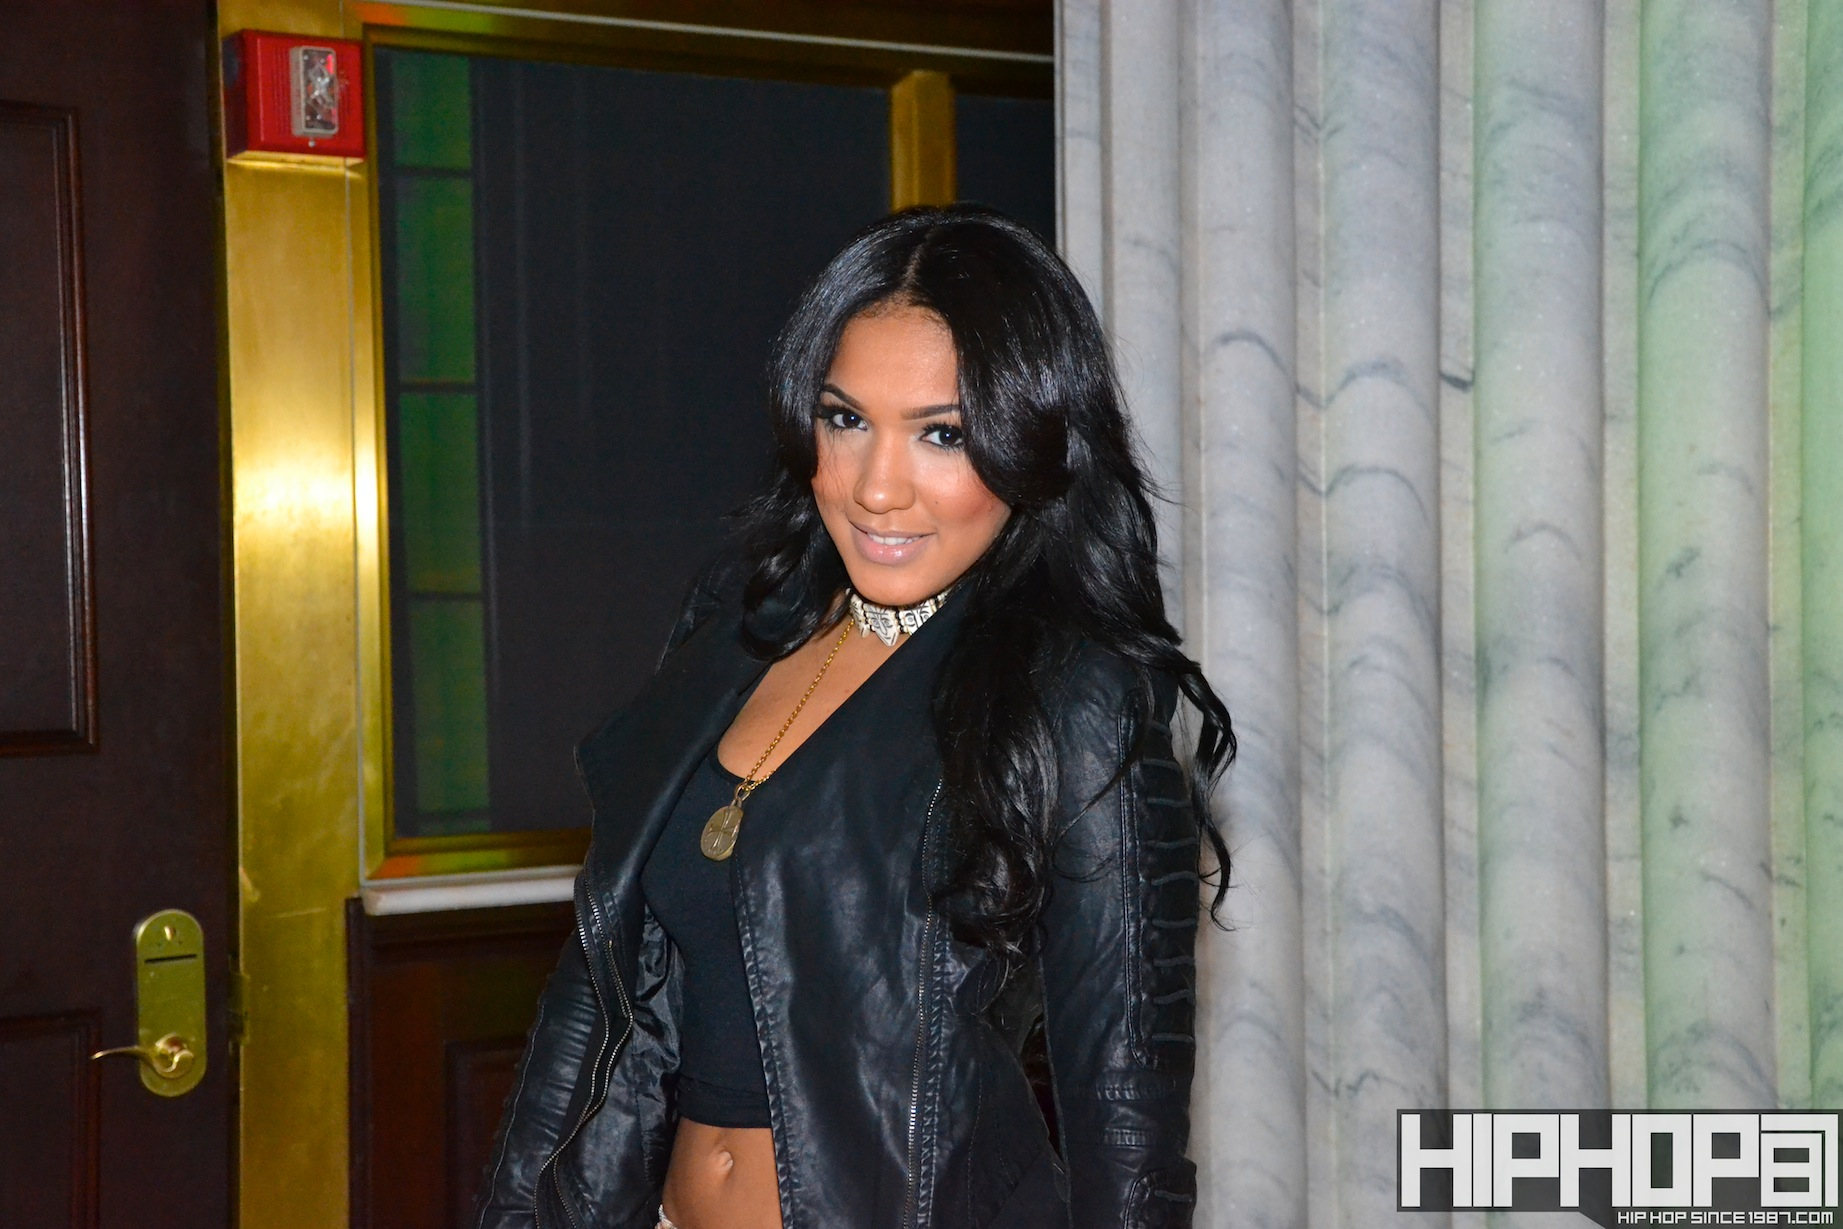 Yaris-Sanchez-3-18-12-6 Yaris Sanchez (@Yaris_Sanchez) Visits Club Onyx In Philly (3/18/12) Photos